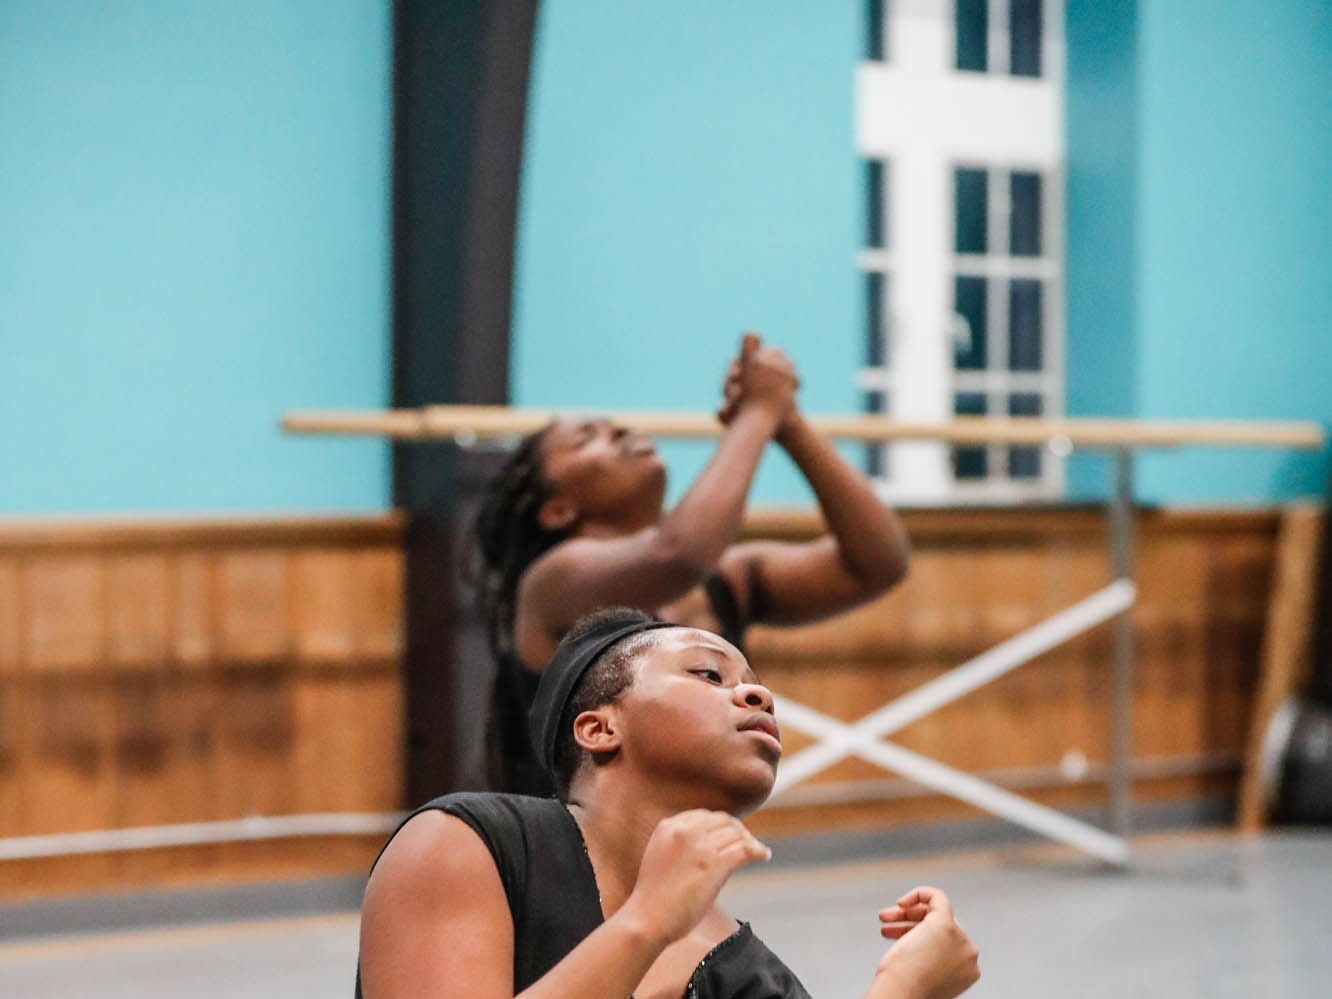 Camryn Bembry practices a dance routine during an Iibada Dance Company class at Broadway United Methodist Church in Indianapolis Ind. on Wednesday, Oct. 31, 2018. The children's nonprofit dance studio teaches cultural enrichment, discipline, and positive self-esteem through the art of dance.